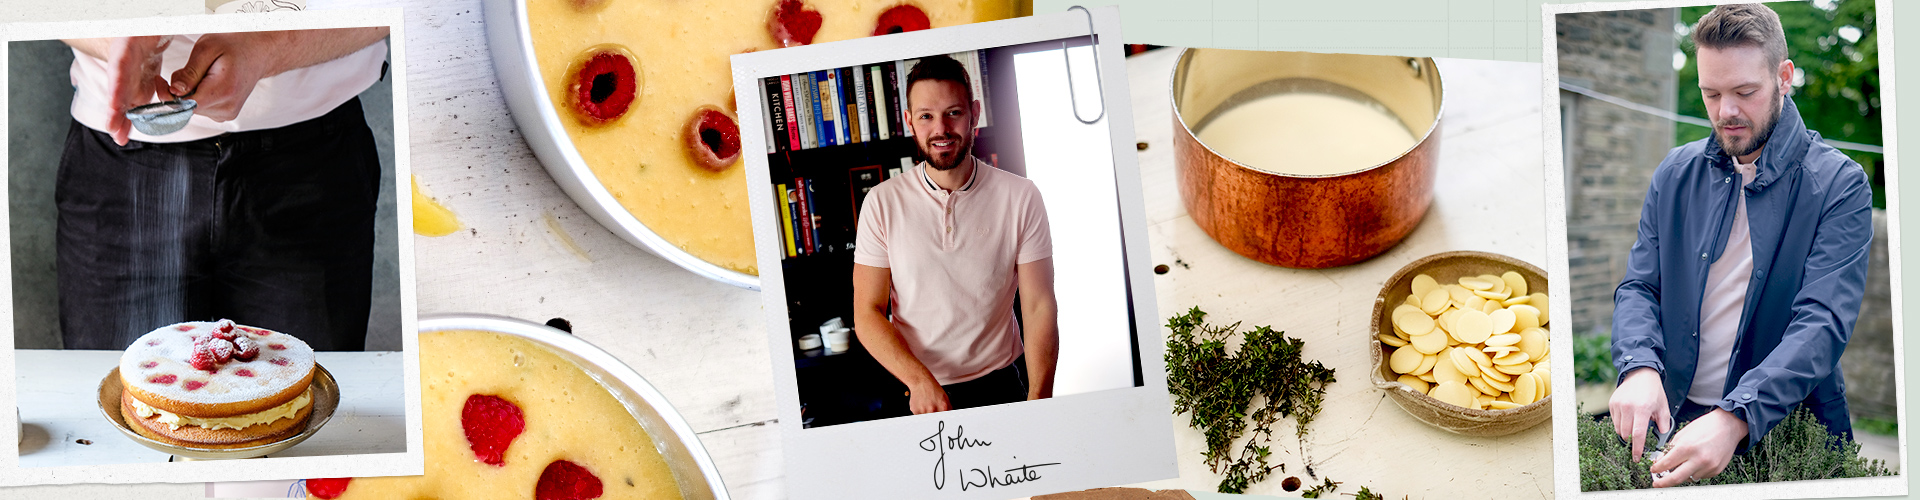 creative baking with John Whaite